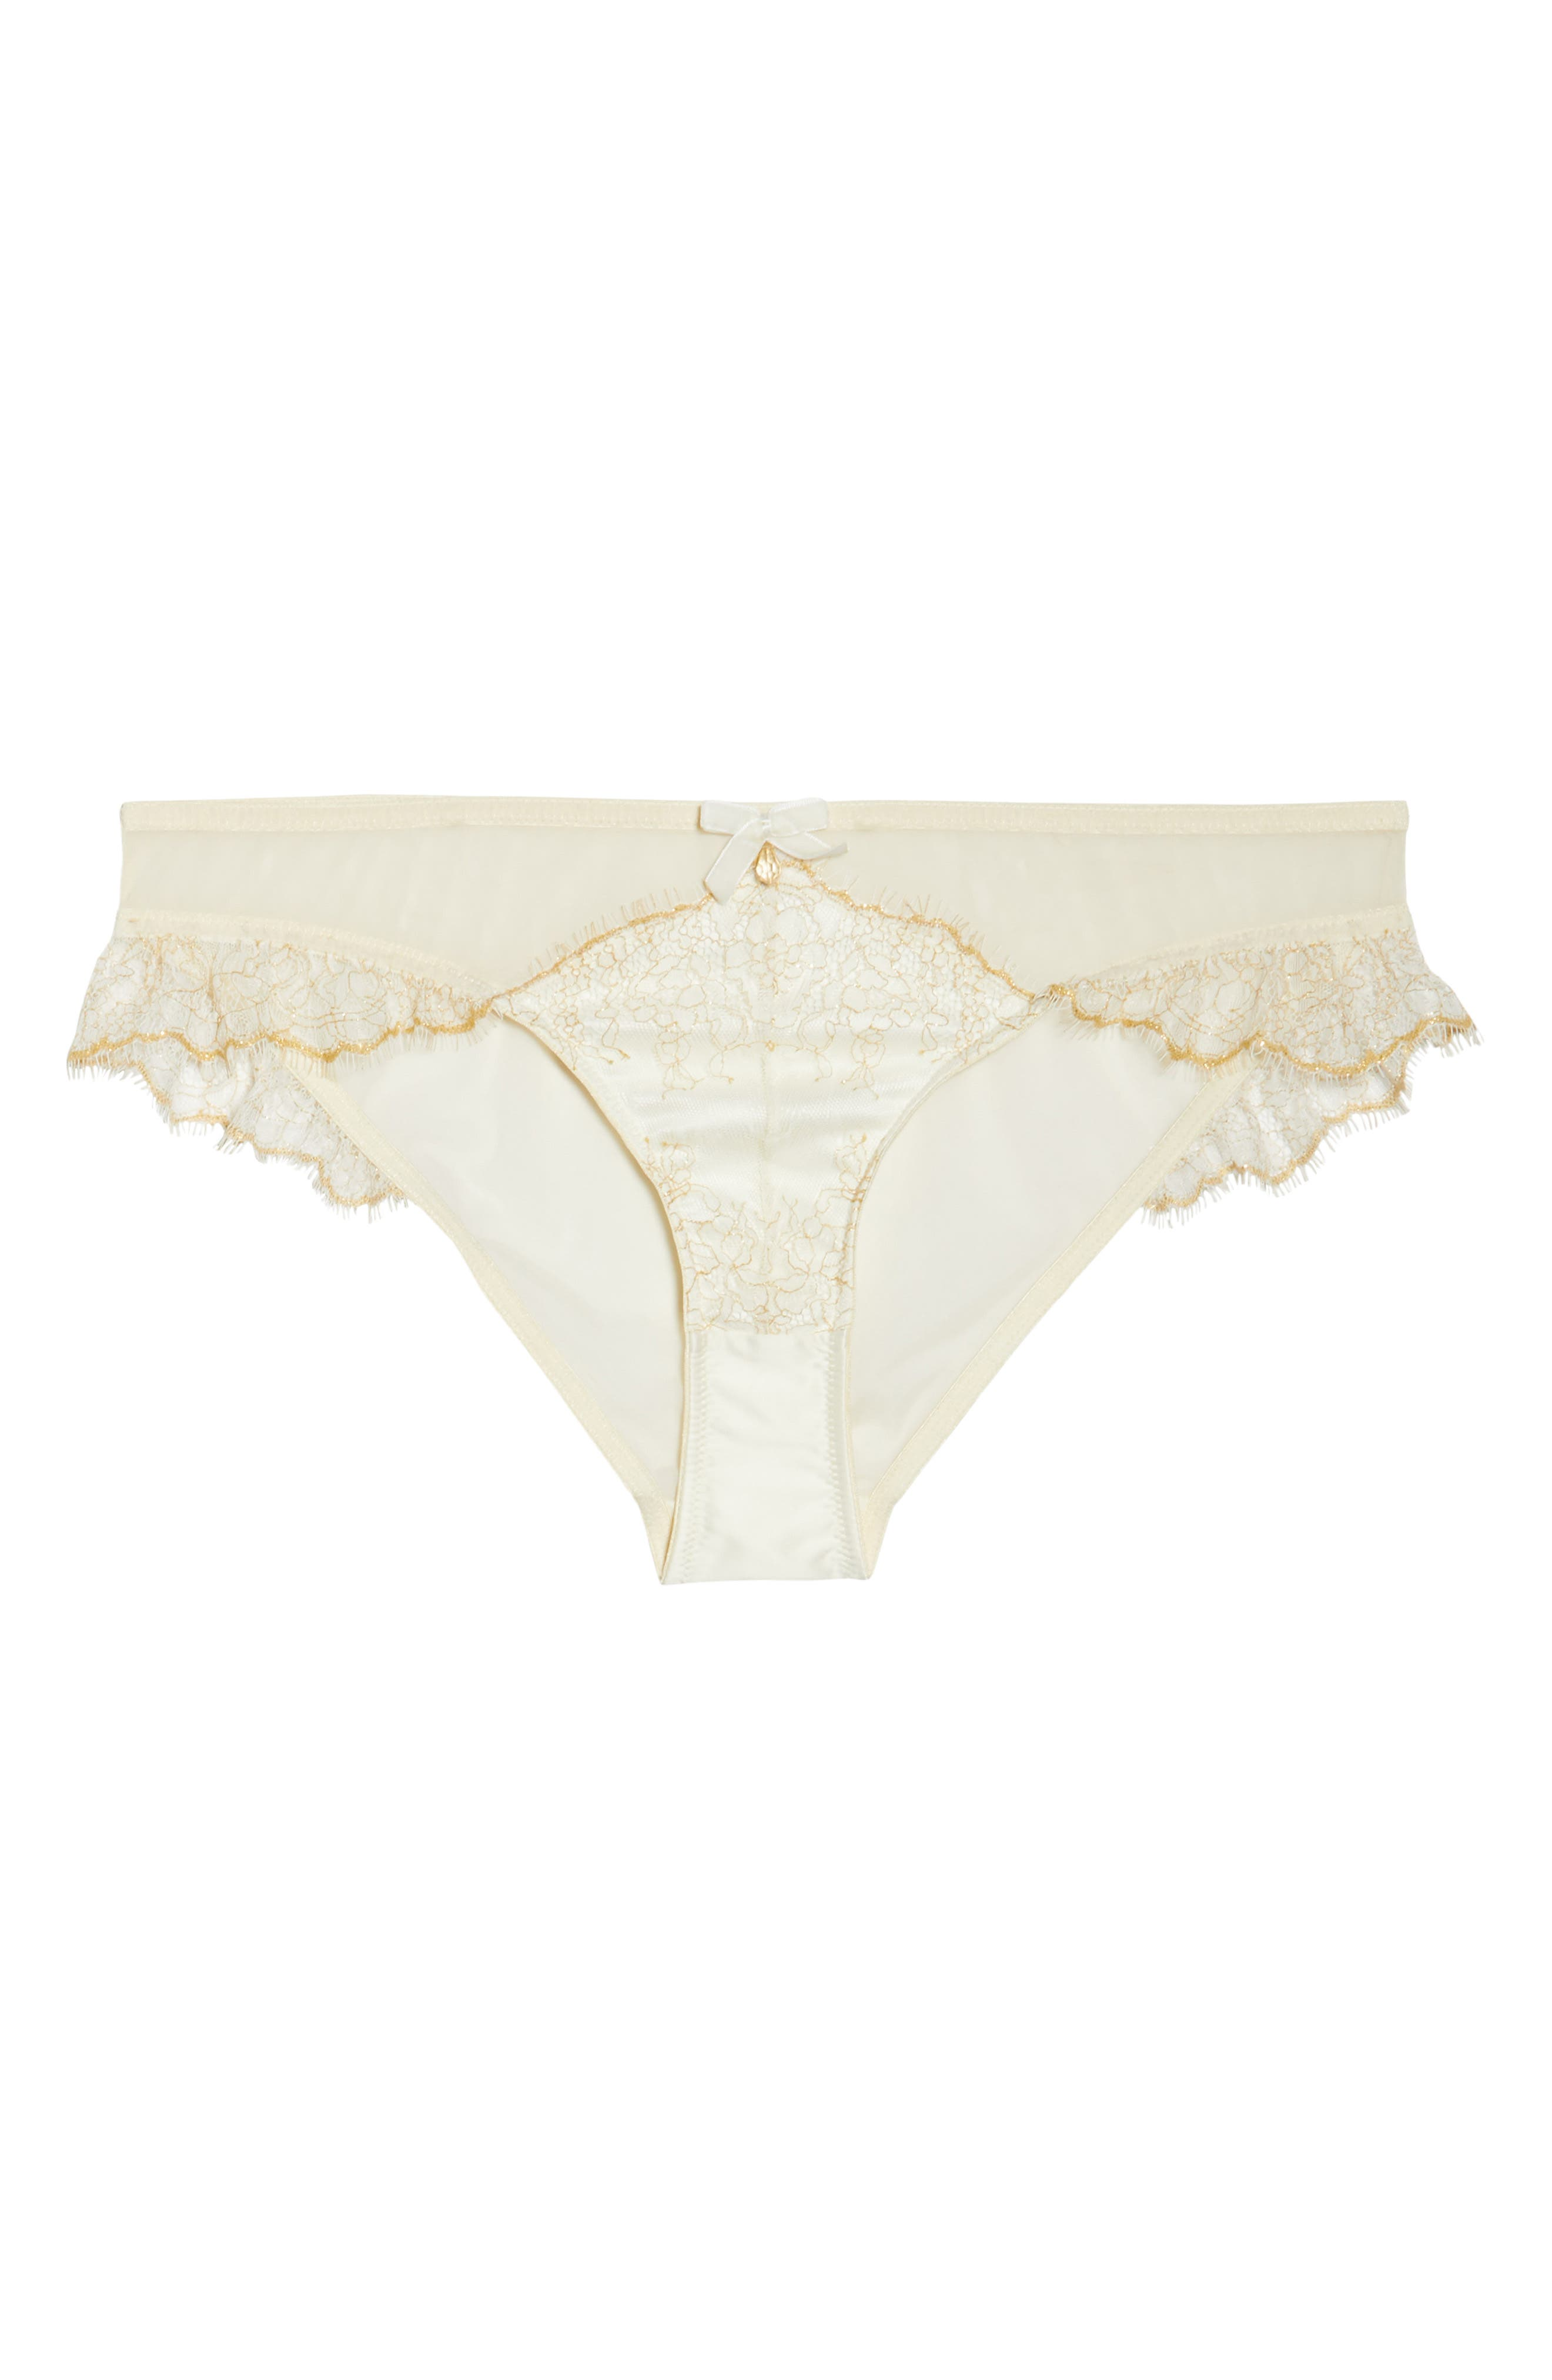 Karine Lace Panties,                             Alternate thumbnail 6, color,                             900